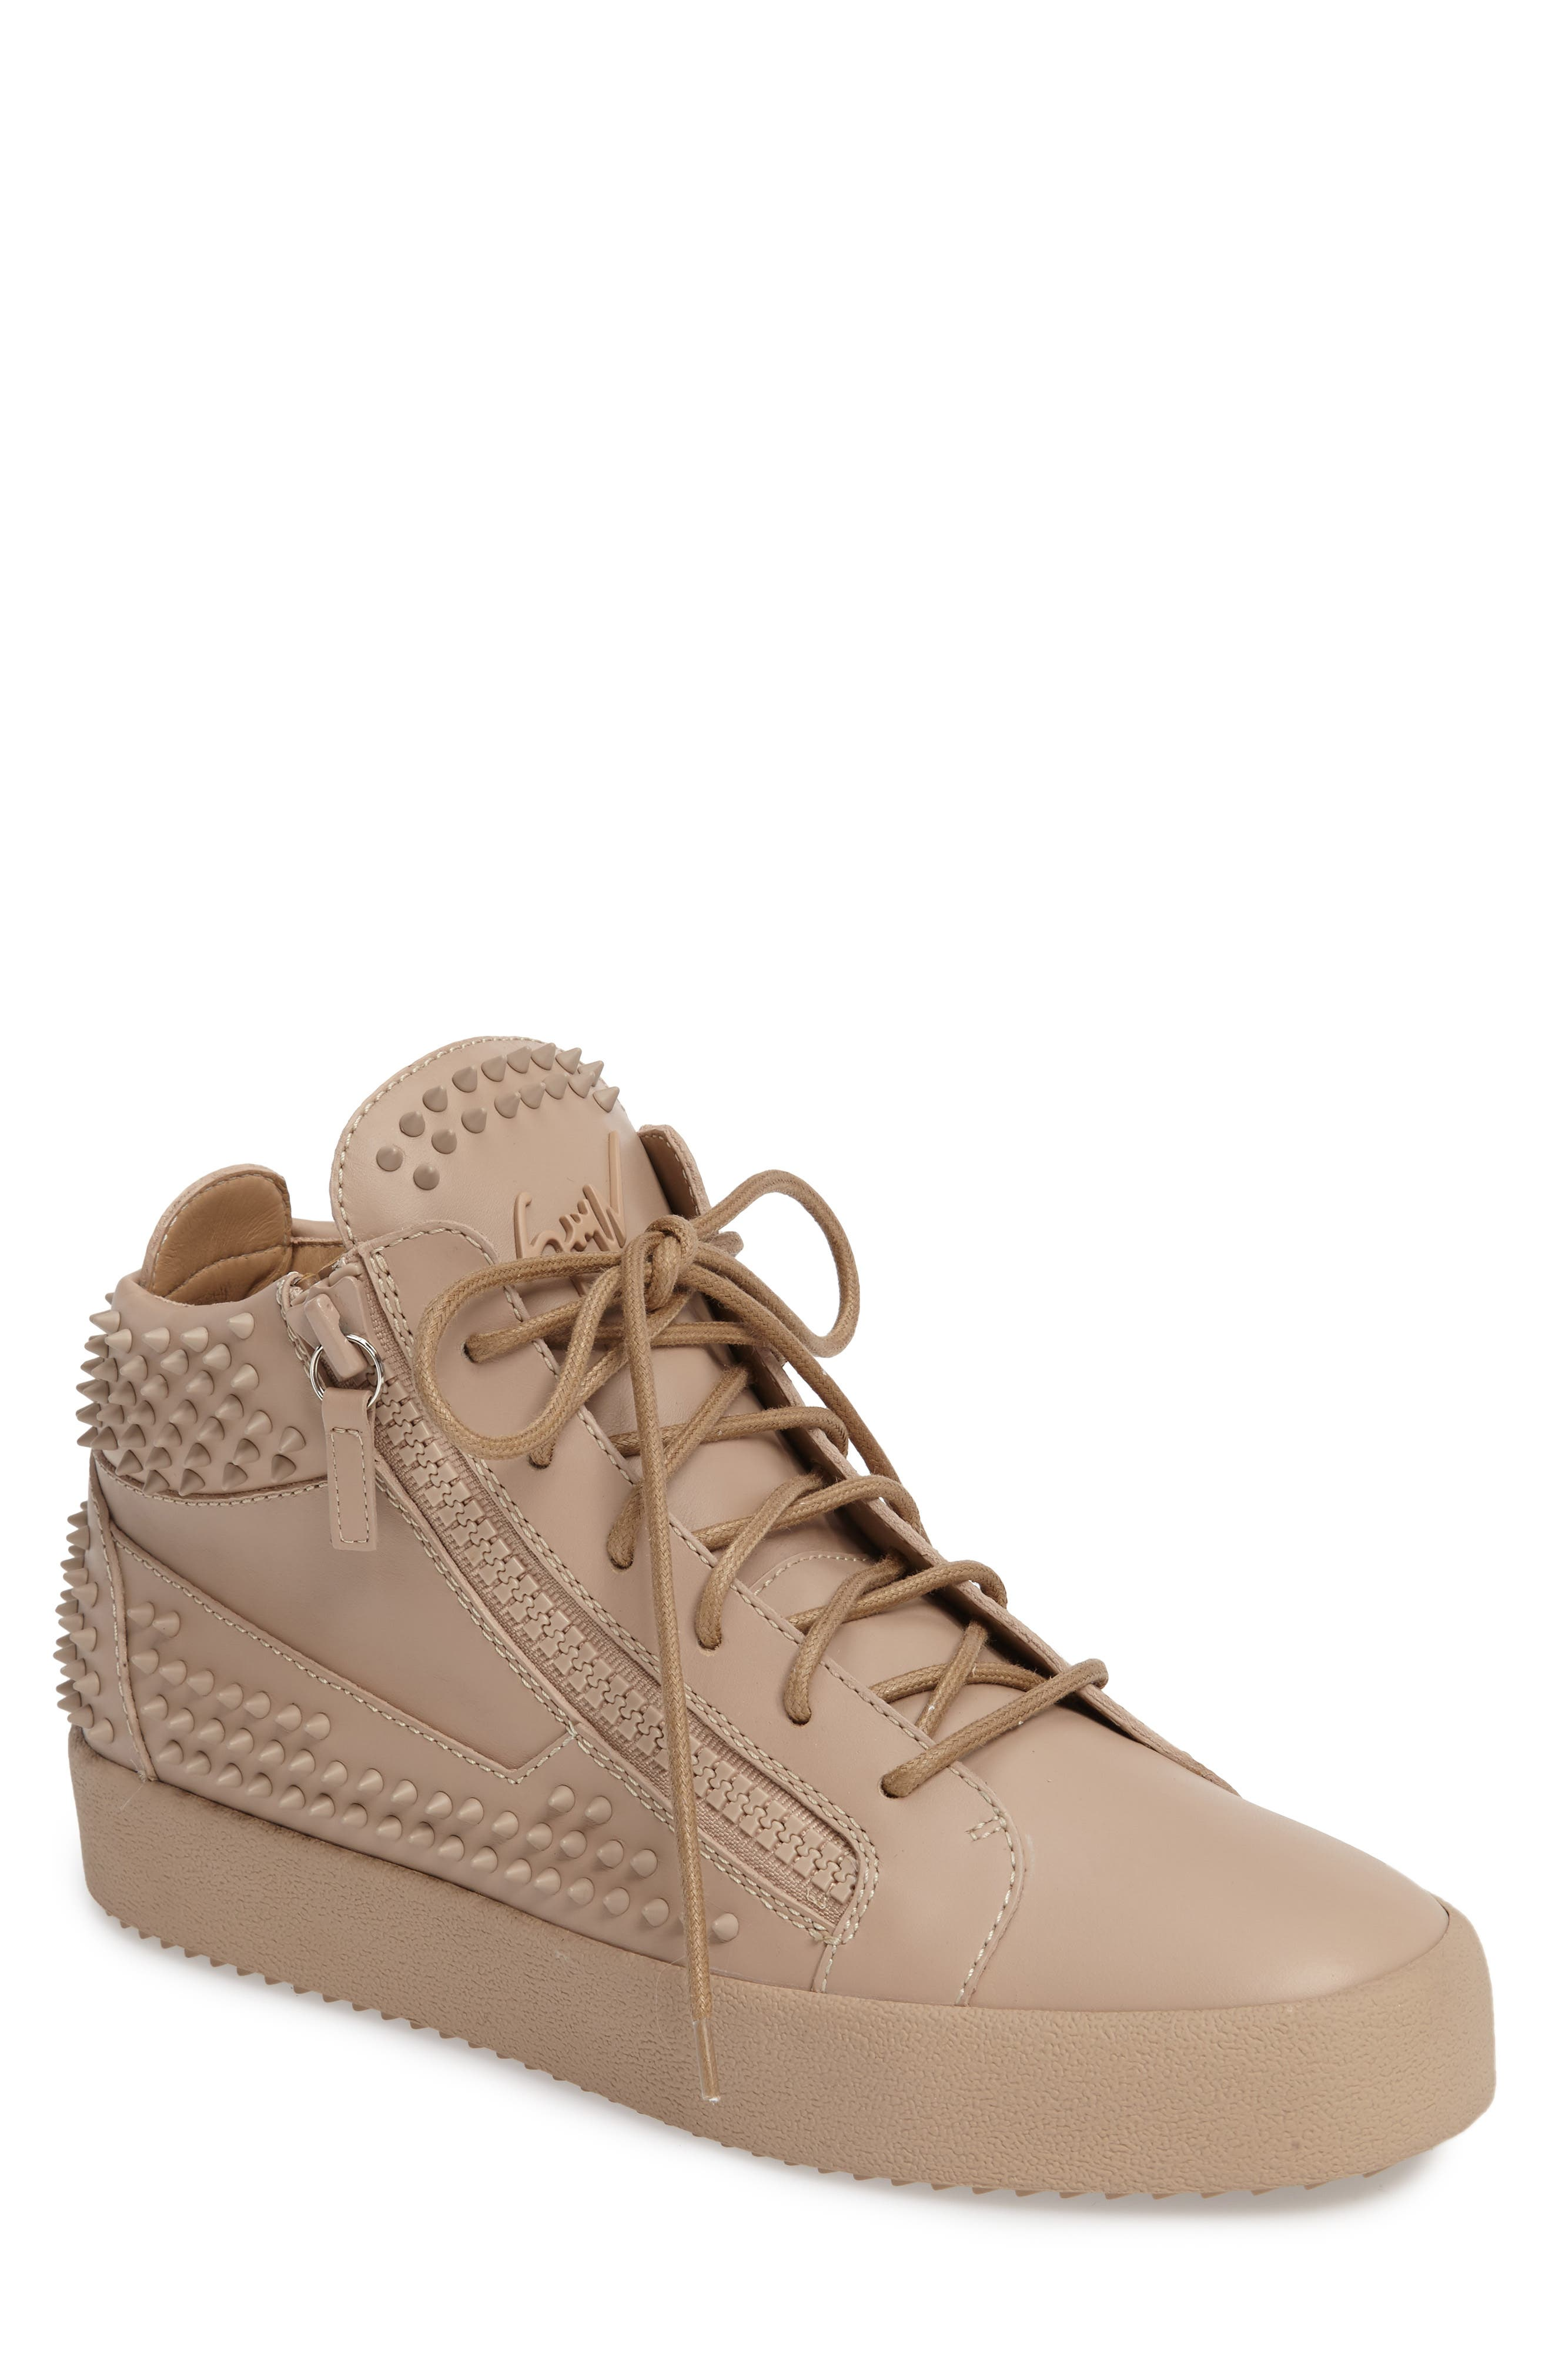 Studded Mid Top Sneaker,                             Main thumbnail 1, color,                             250